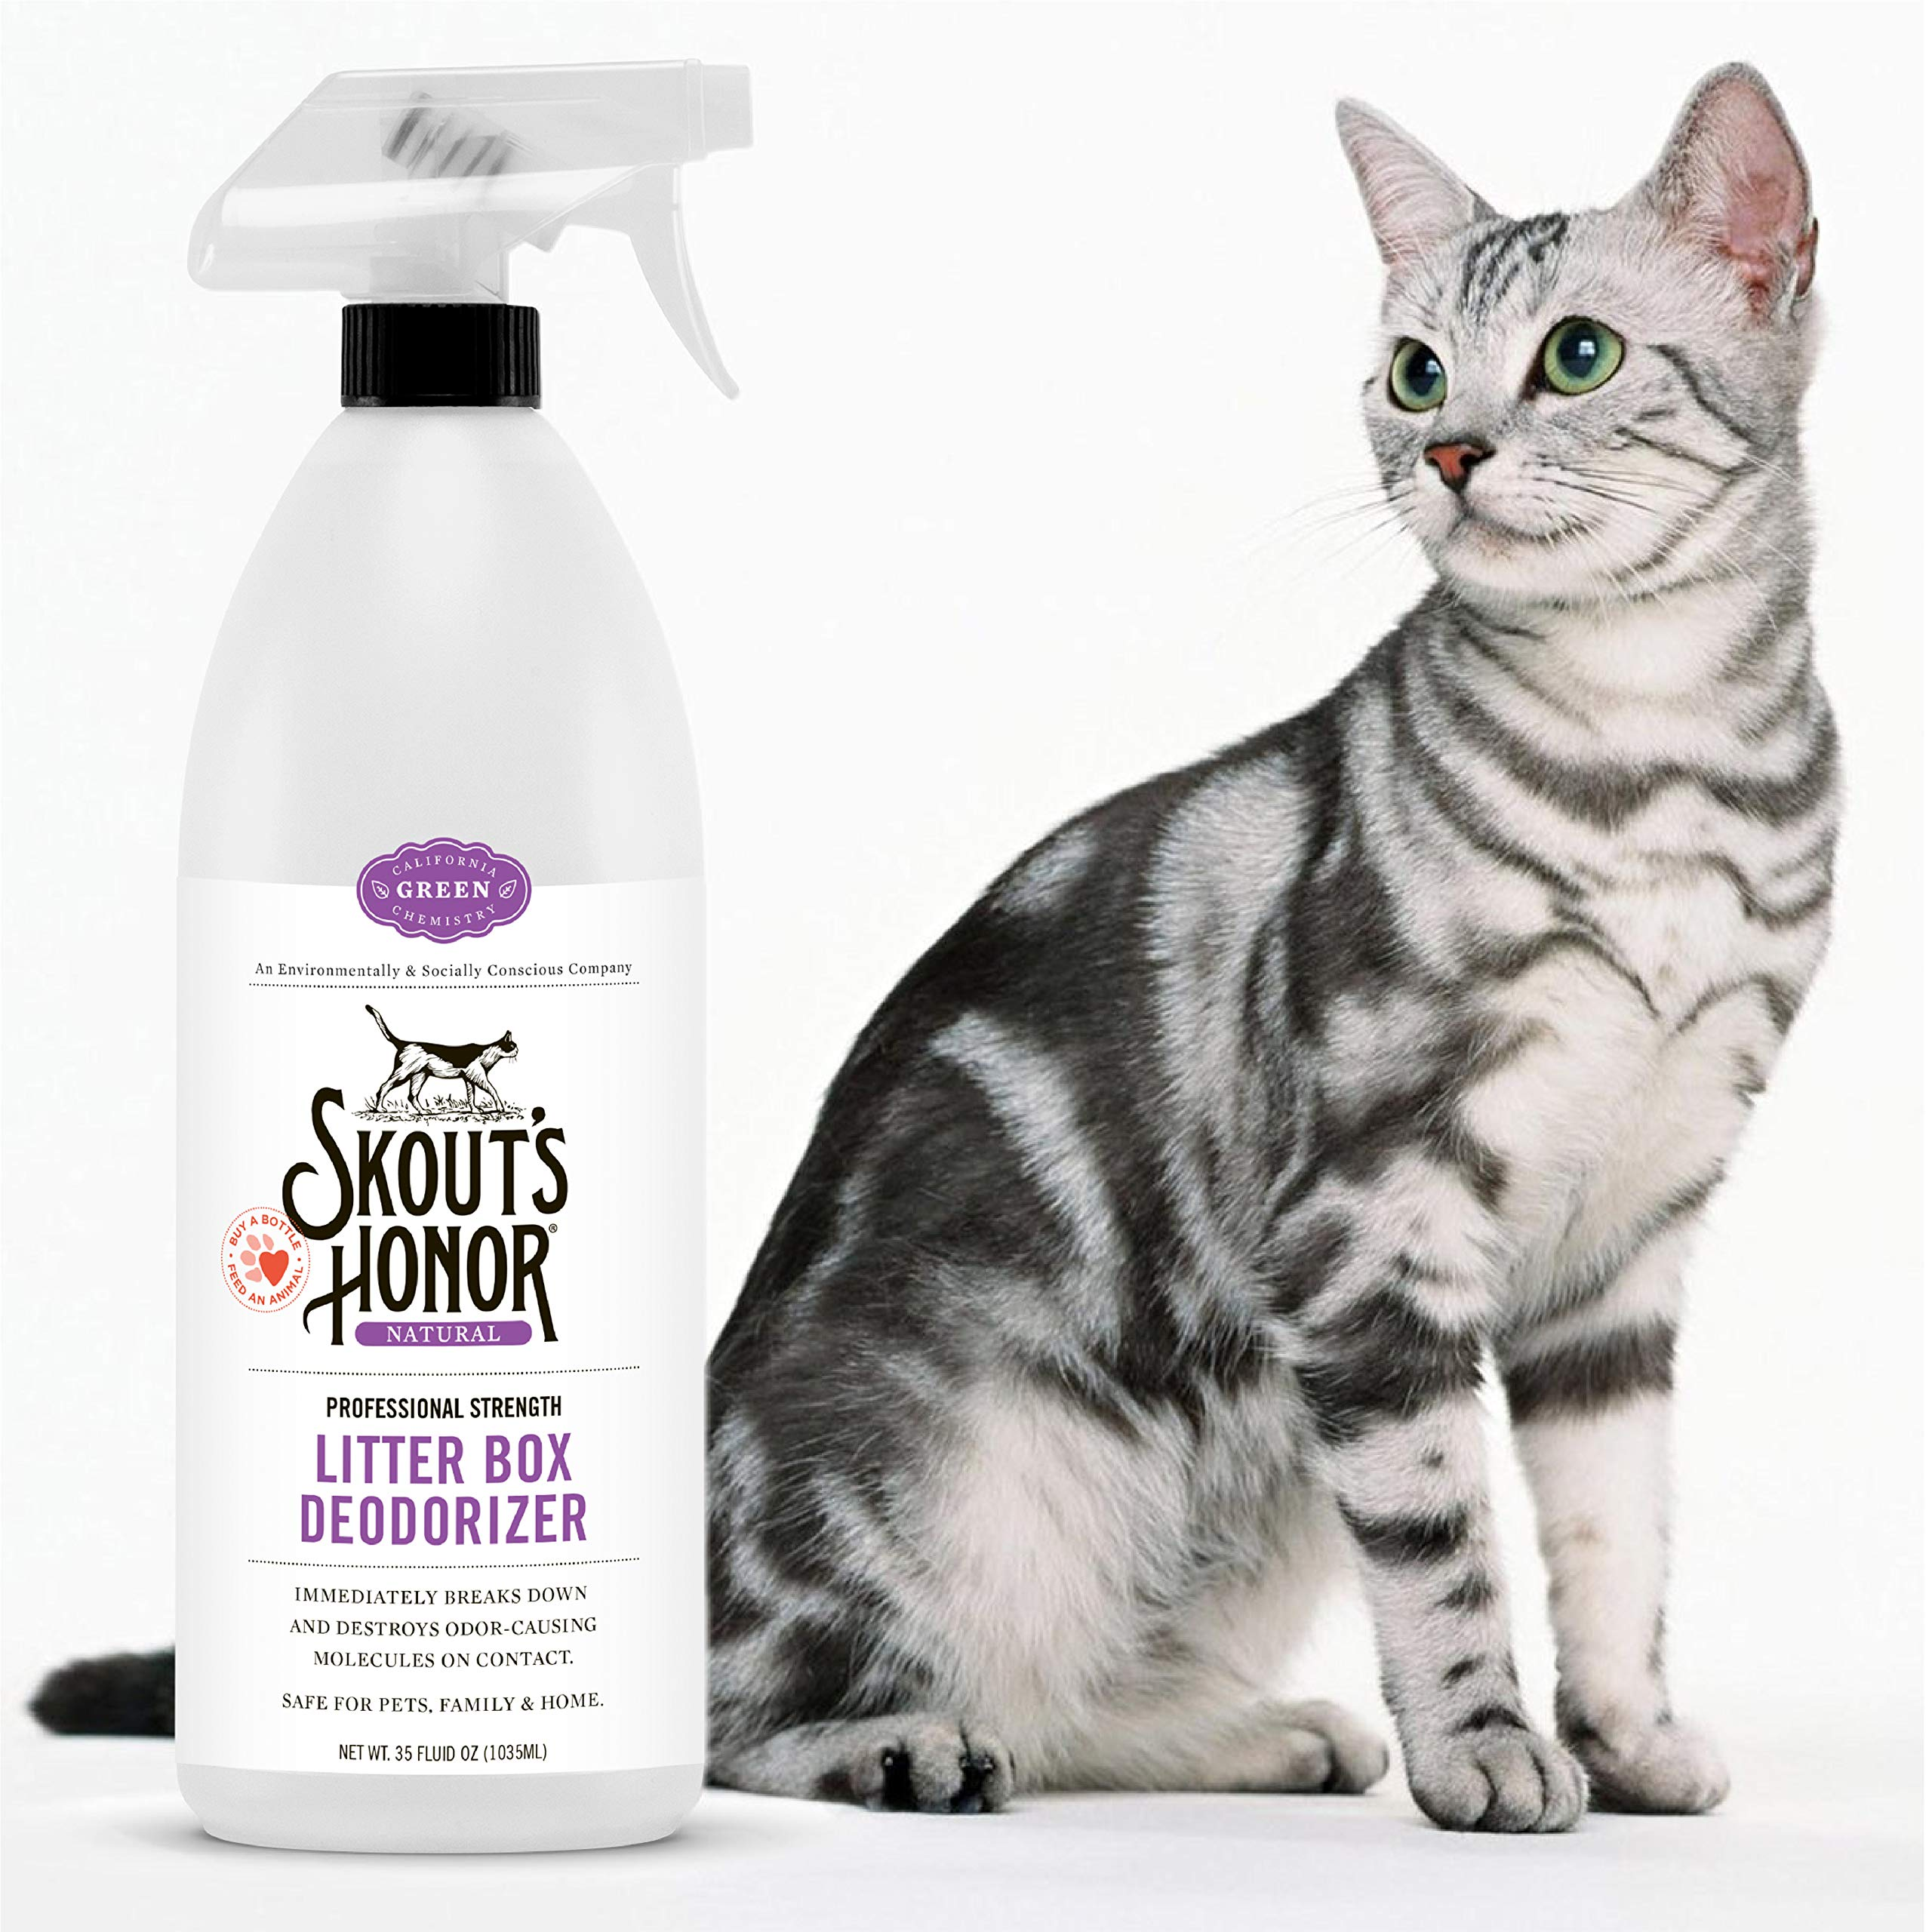 Skout's Honor Professional Strength Litter Box Deodorizer by SKOUT'S HONOR